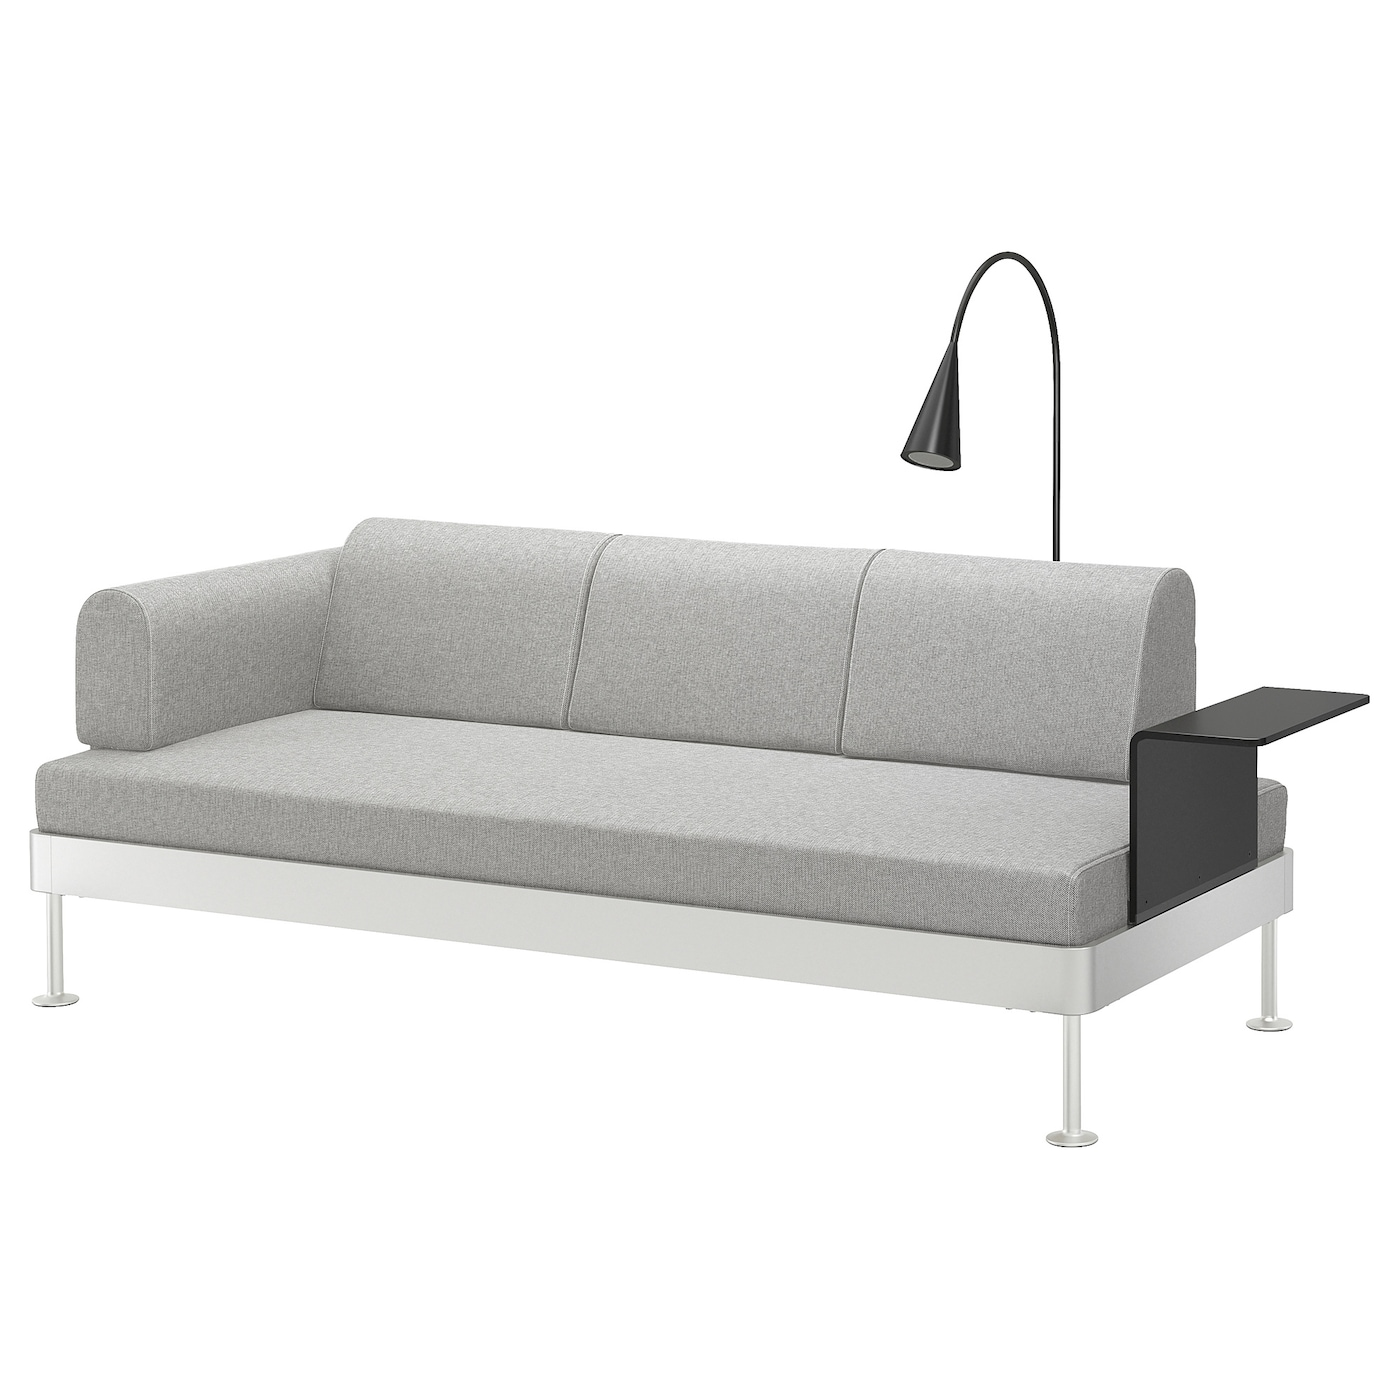 delaktig 3 seat sofa w side table and lamp tallmyra white black ikea. Black Bedroom Furniture Sets. Home Design Ideas